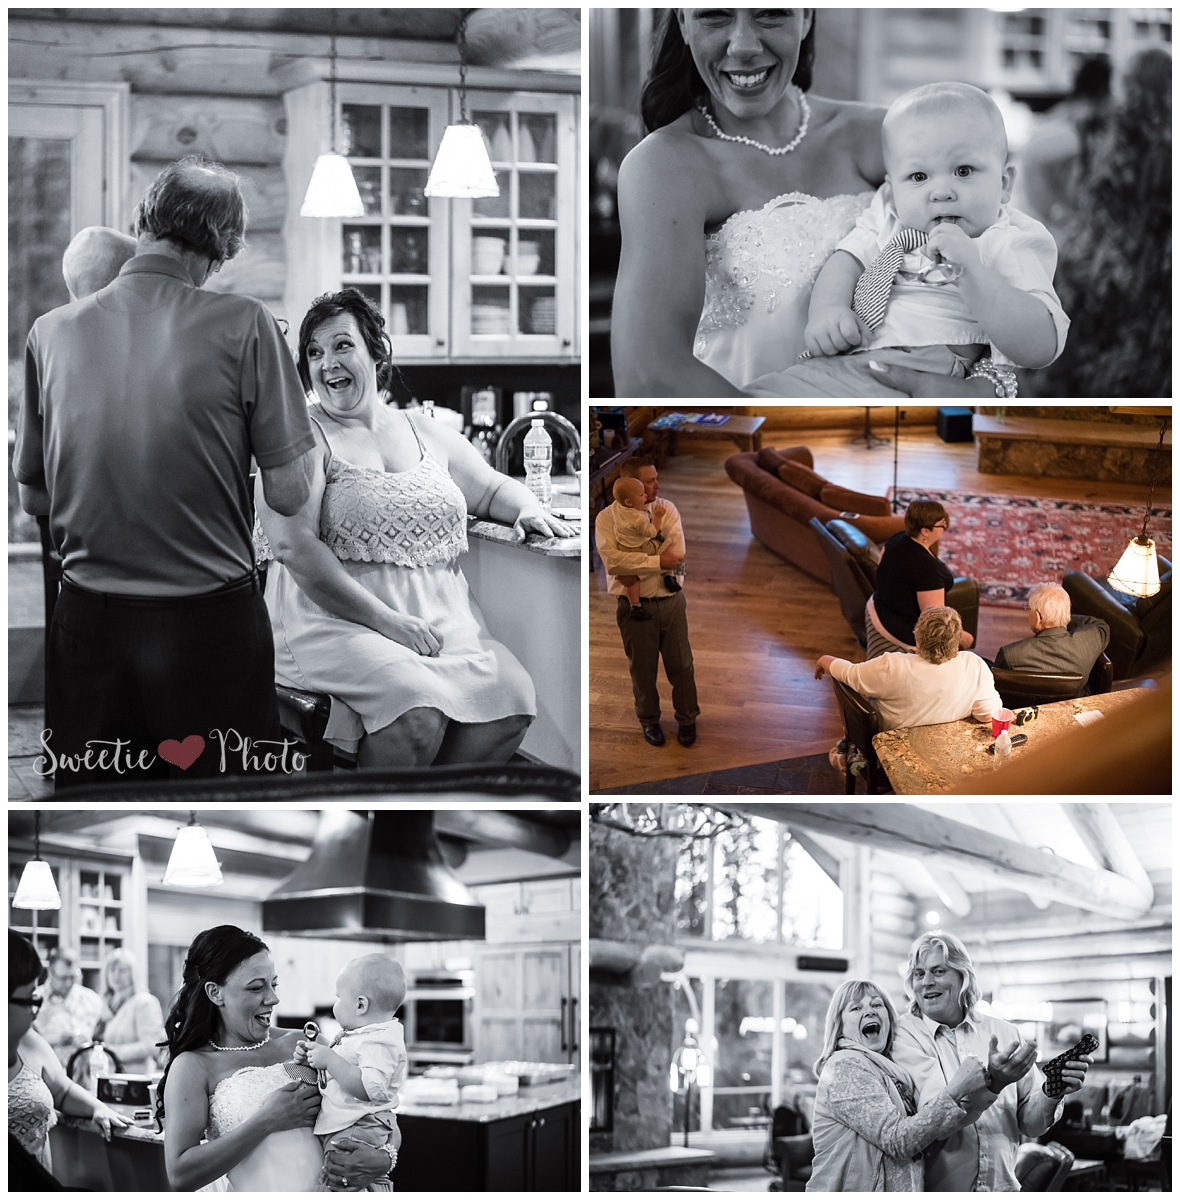 Intimate Breckenridge Wedding| Around the House | Sweetie Photo, Colorado Based Wedding Photography